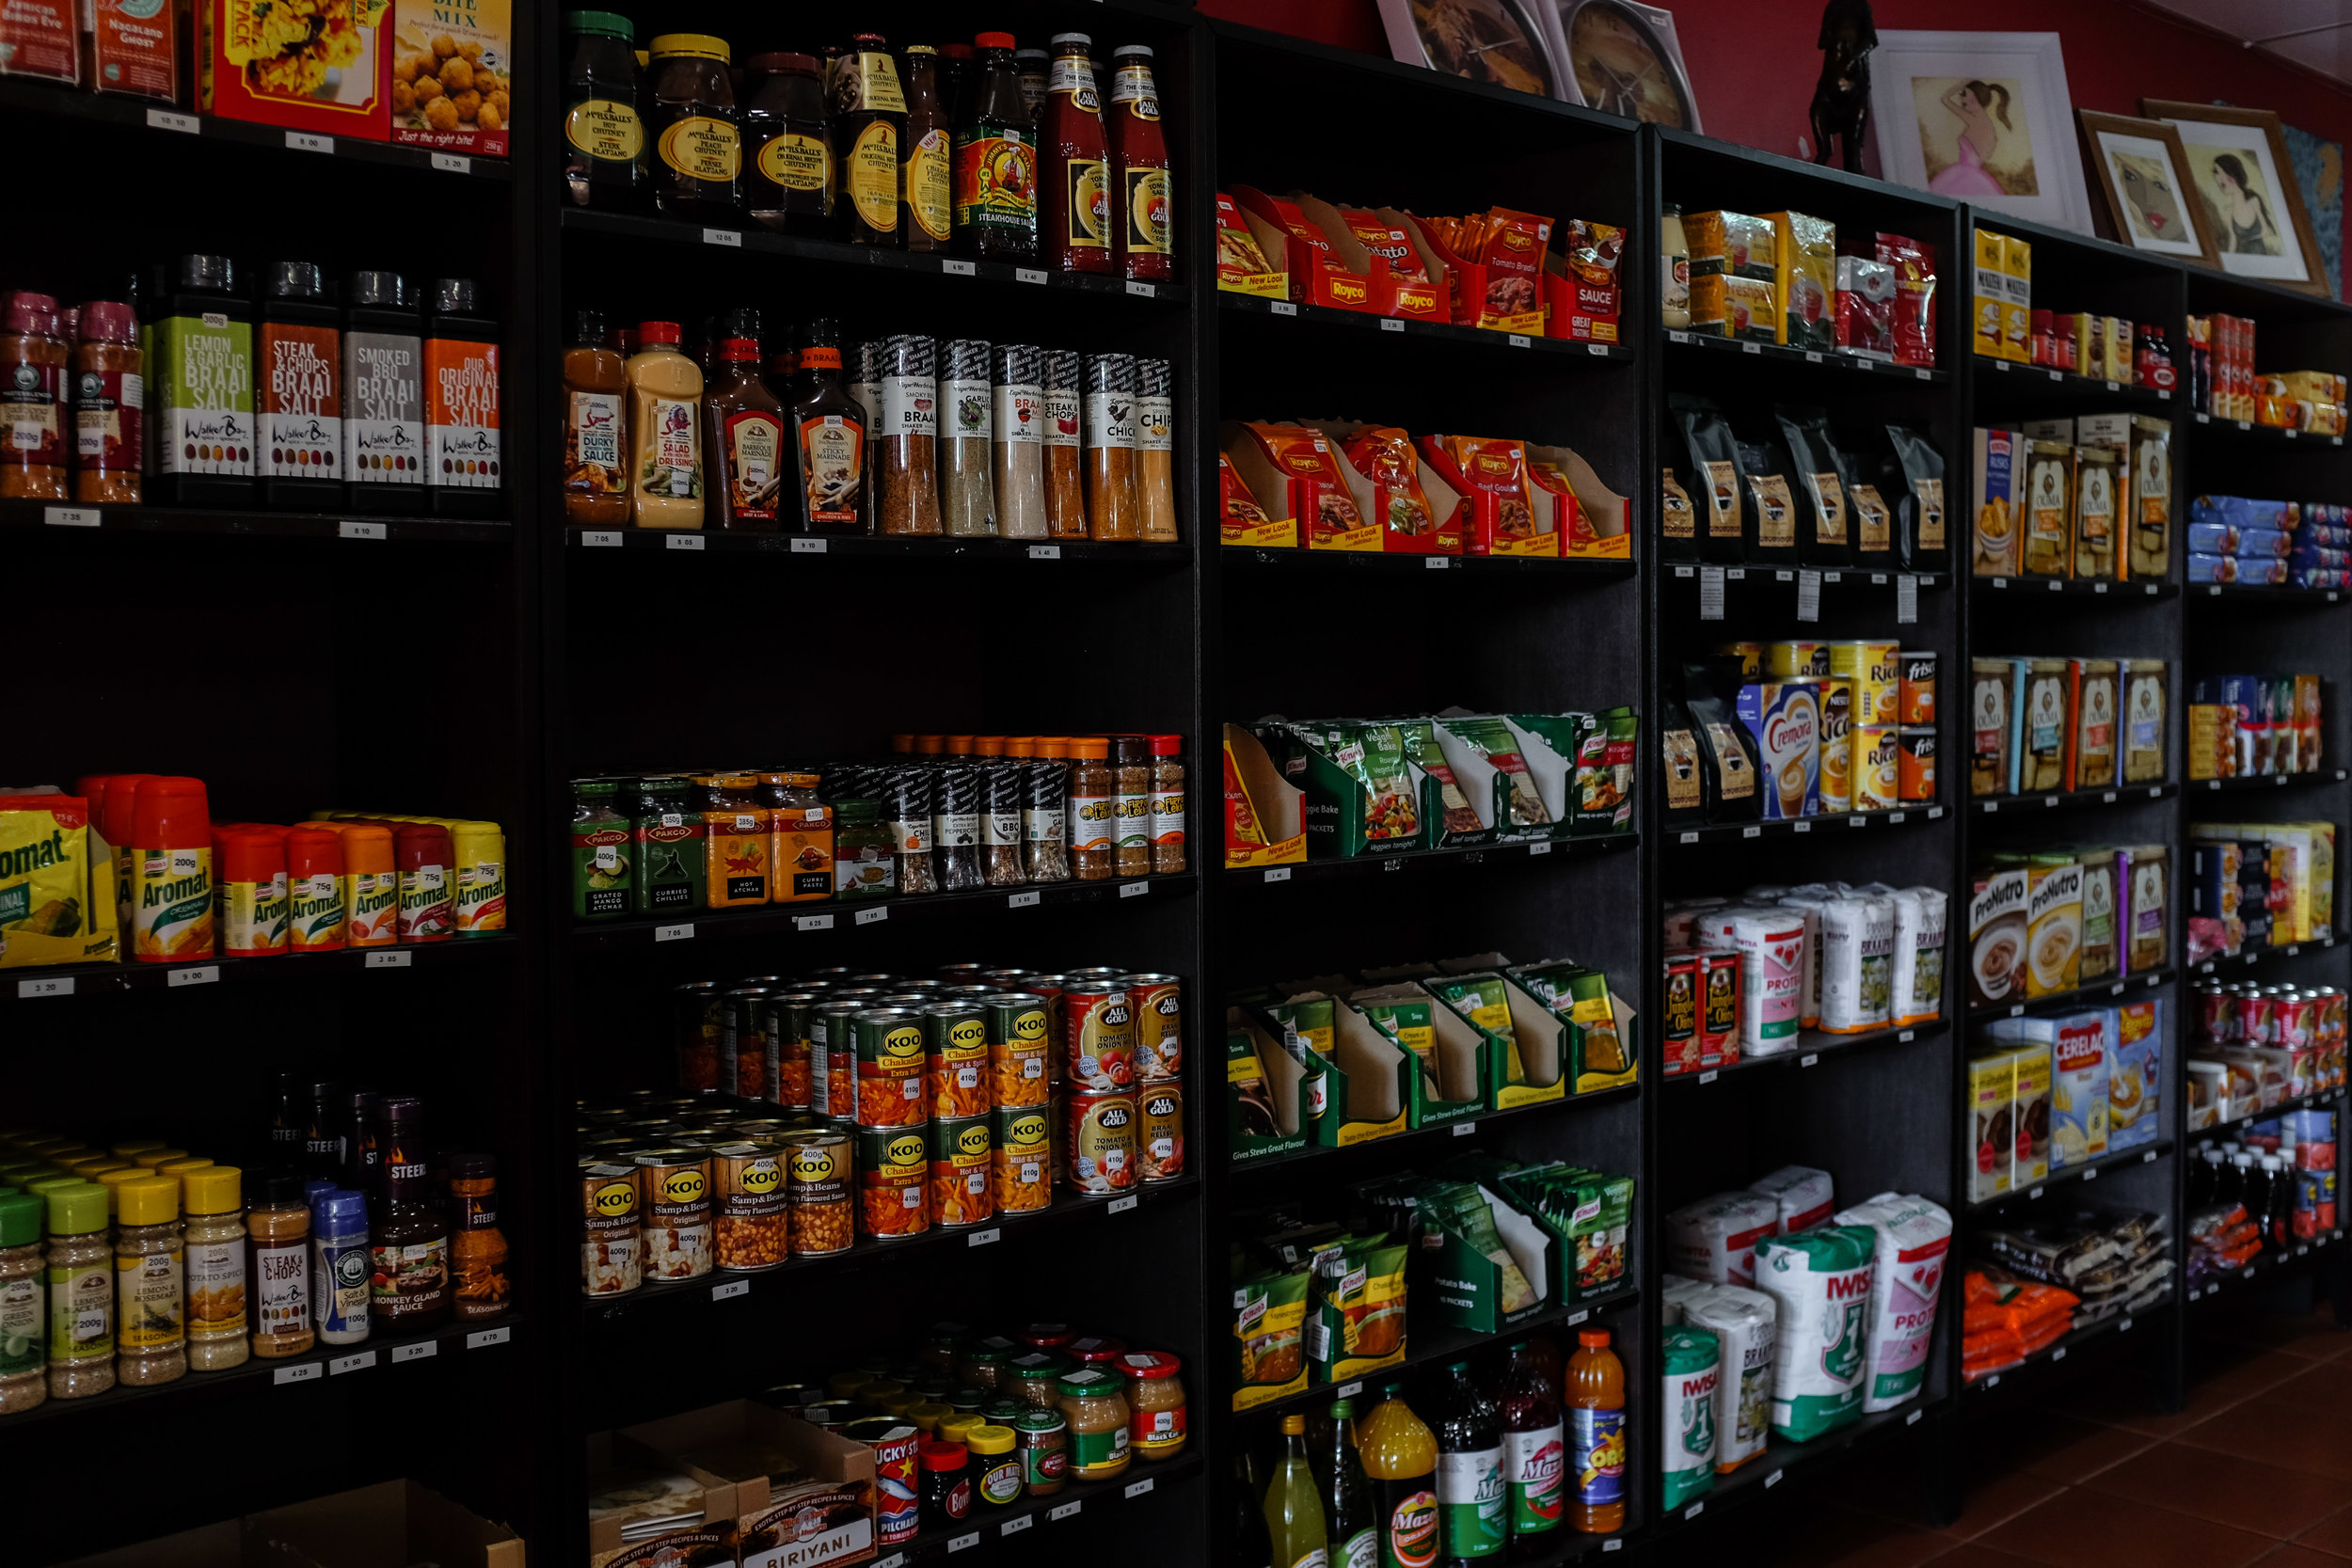 Toowoomba South African International Grocery Food Shop